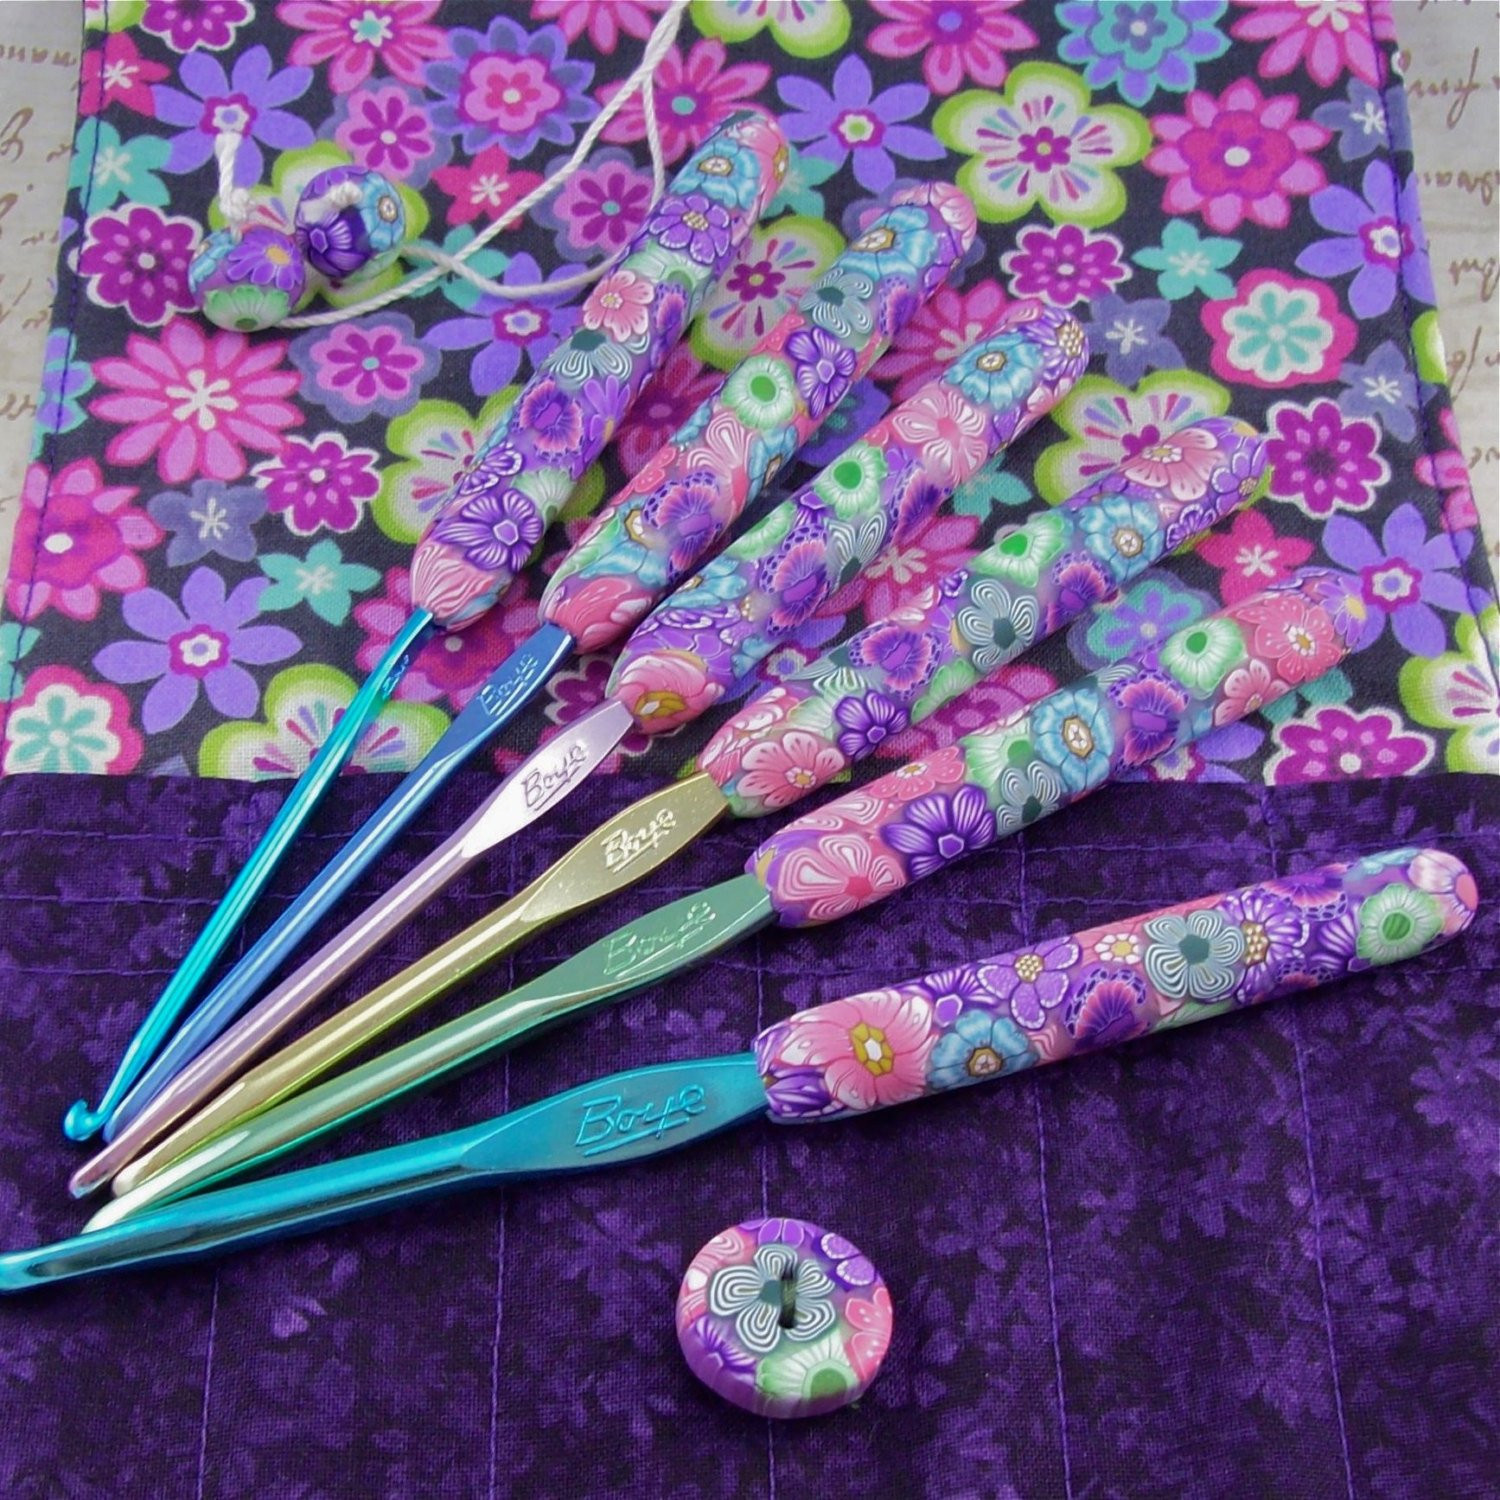 Awesome Crochet Hook Case with Set Of Boye Crochet by Polymerclayshed Crochet Hook Sets with Case Of Amazing 49 Images Crochet Hook Sets with Case